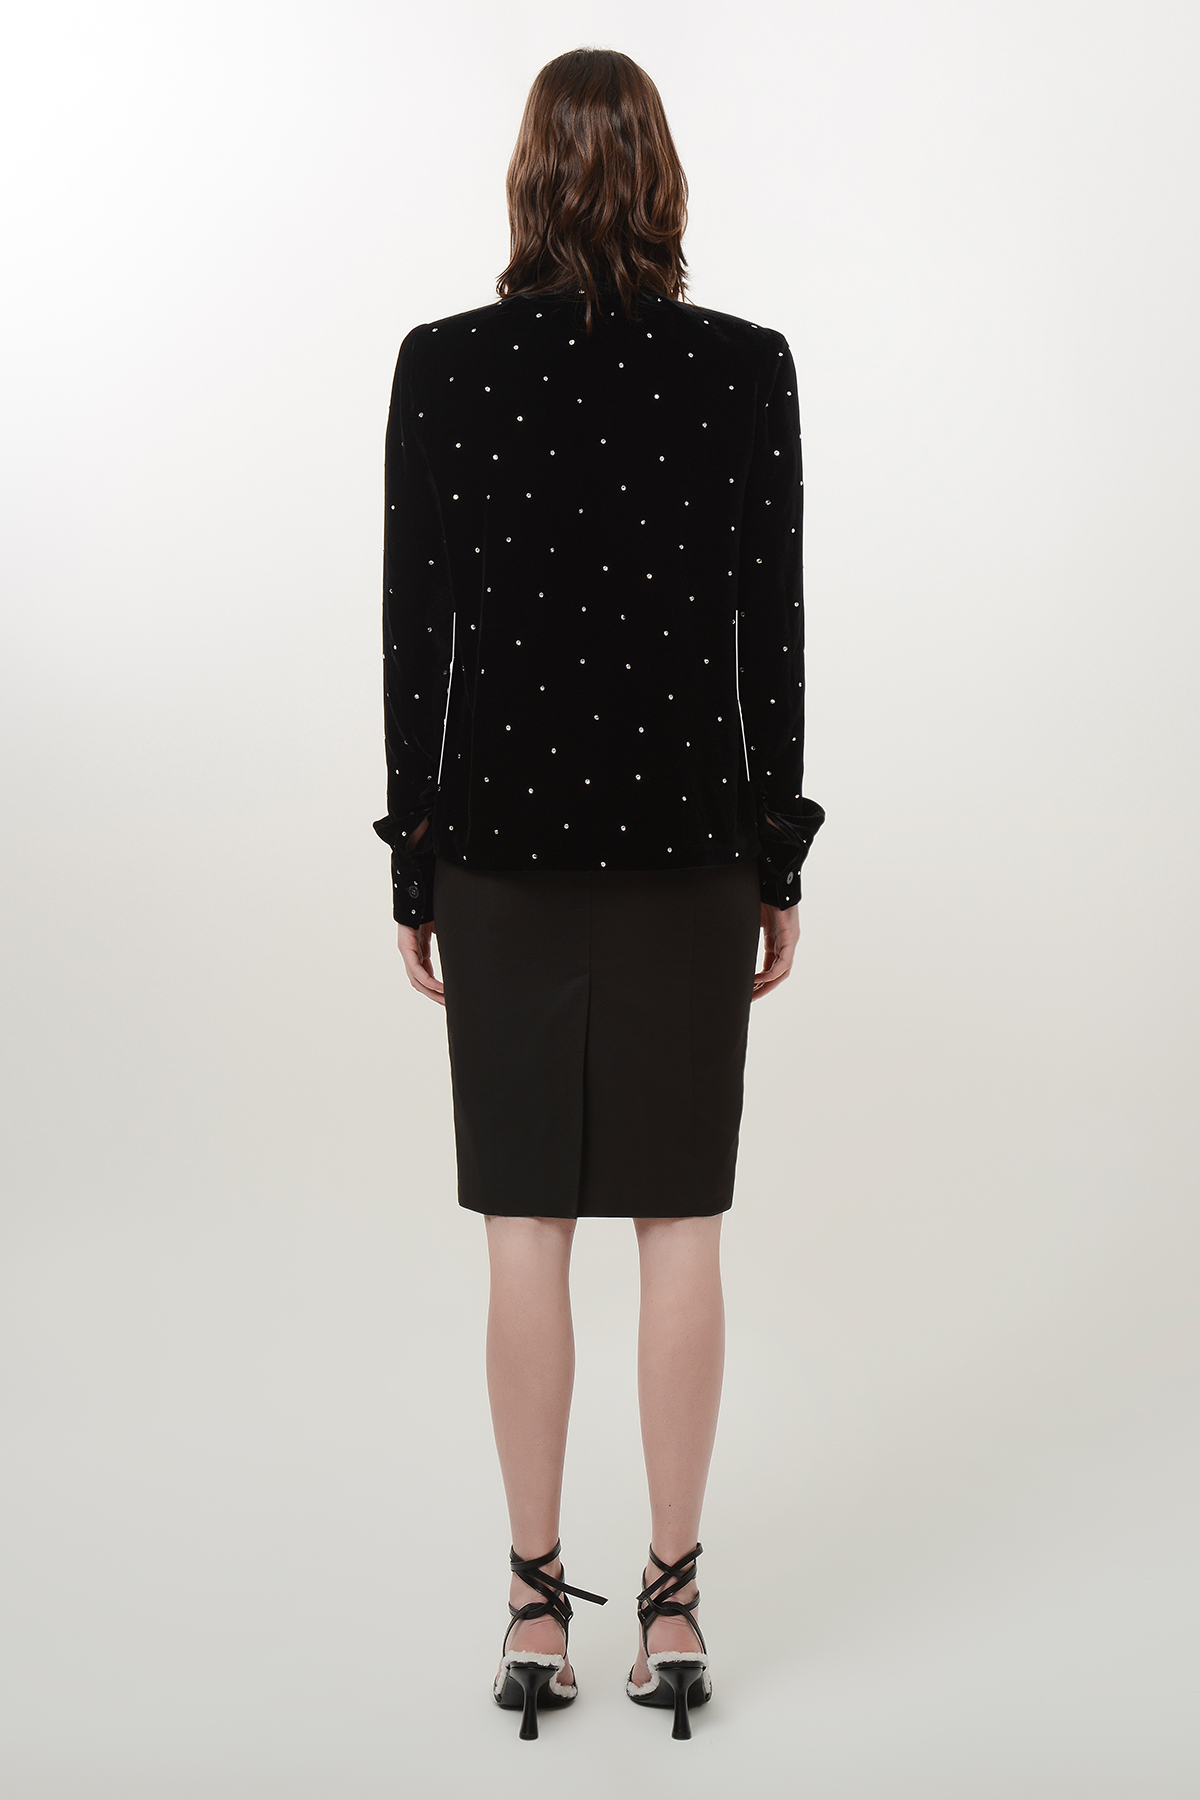 Bow tie velvet shirt with shoulder pads and crystal drops 2